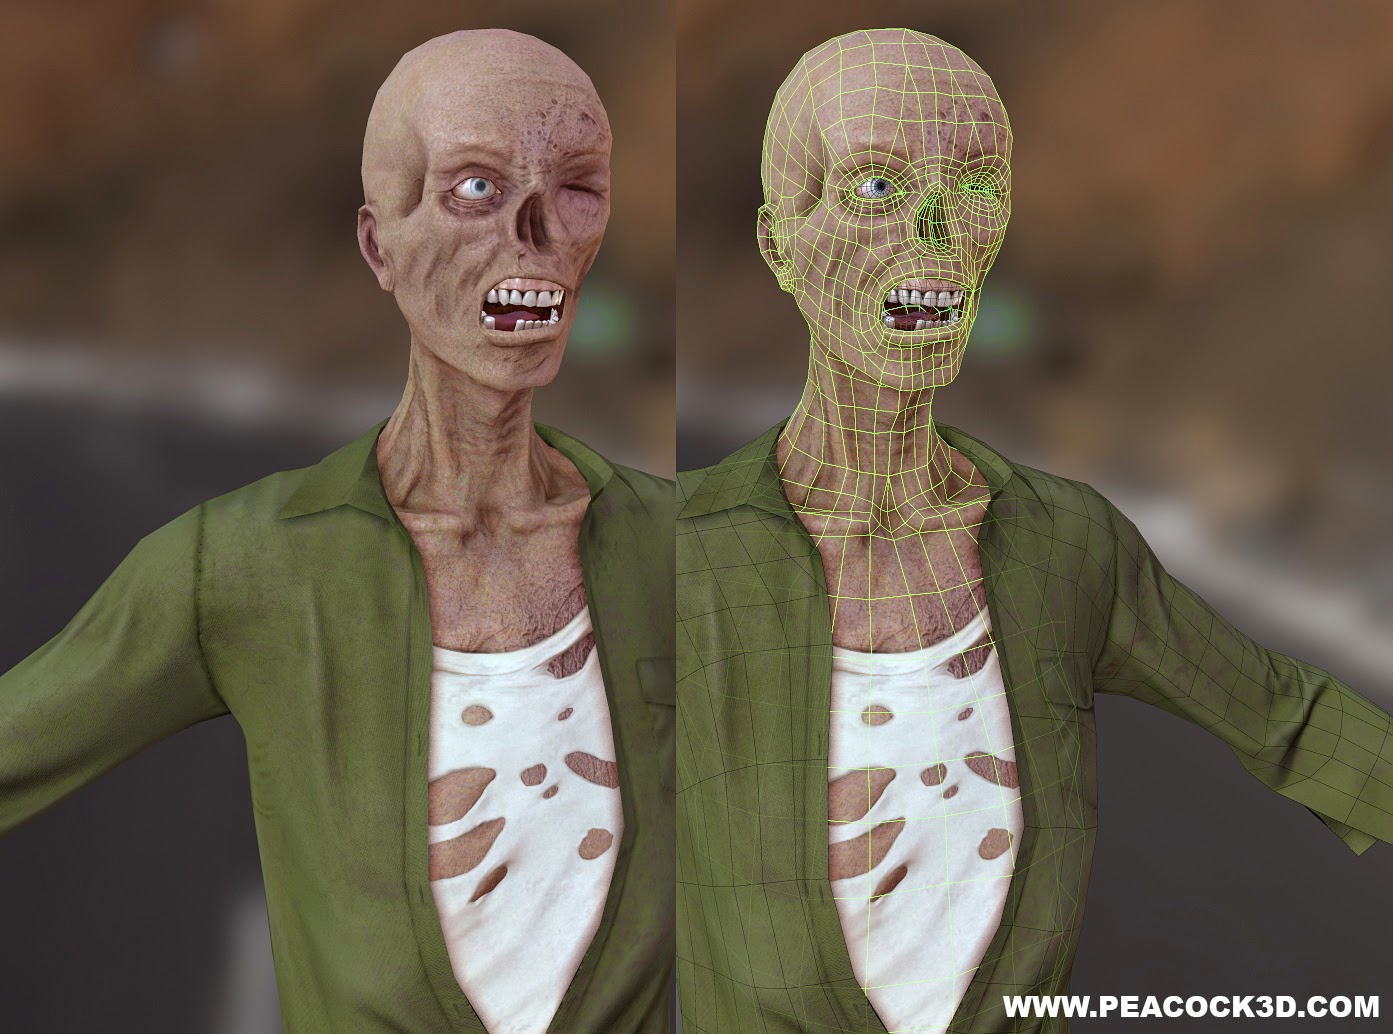 Zombie, Low Poly, ZBrush Zombie, ZBrush, Marmoset Toolbag, Pixologic, Marmoset, Real Time Render, Videogames, Zombie Videogame